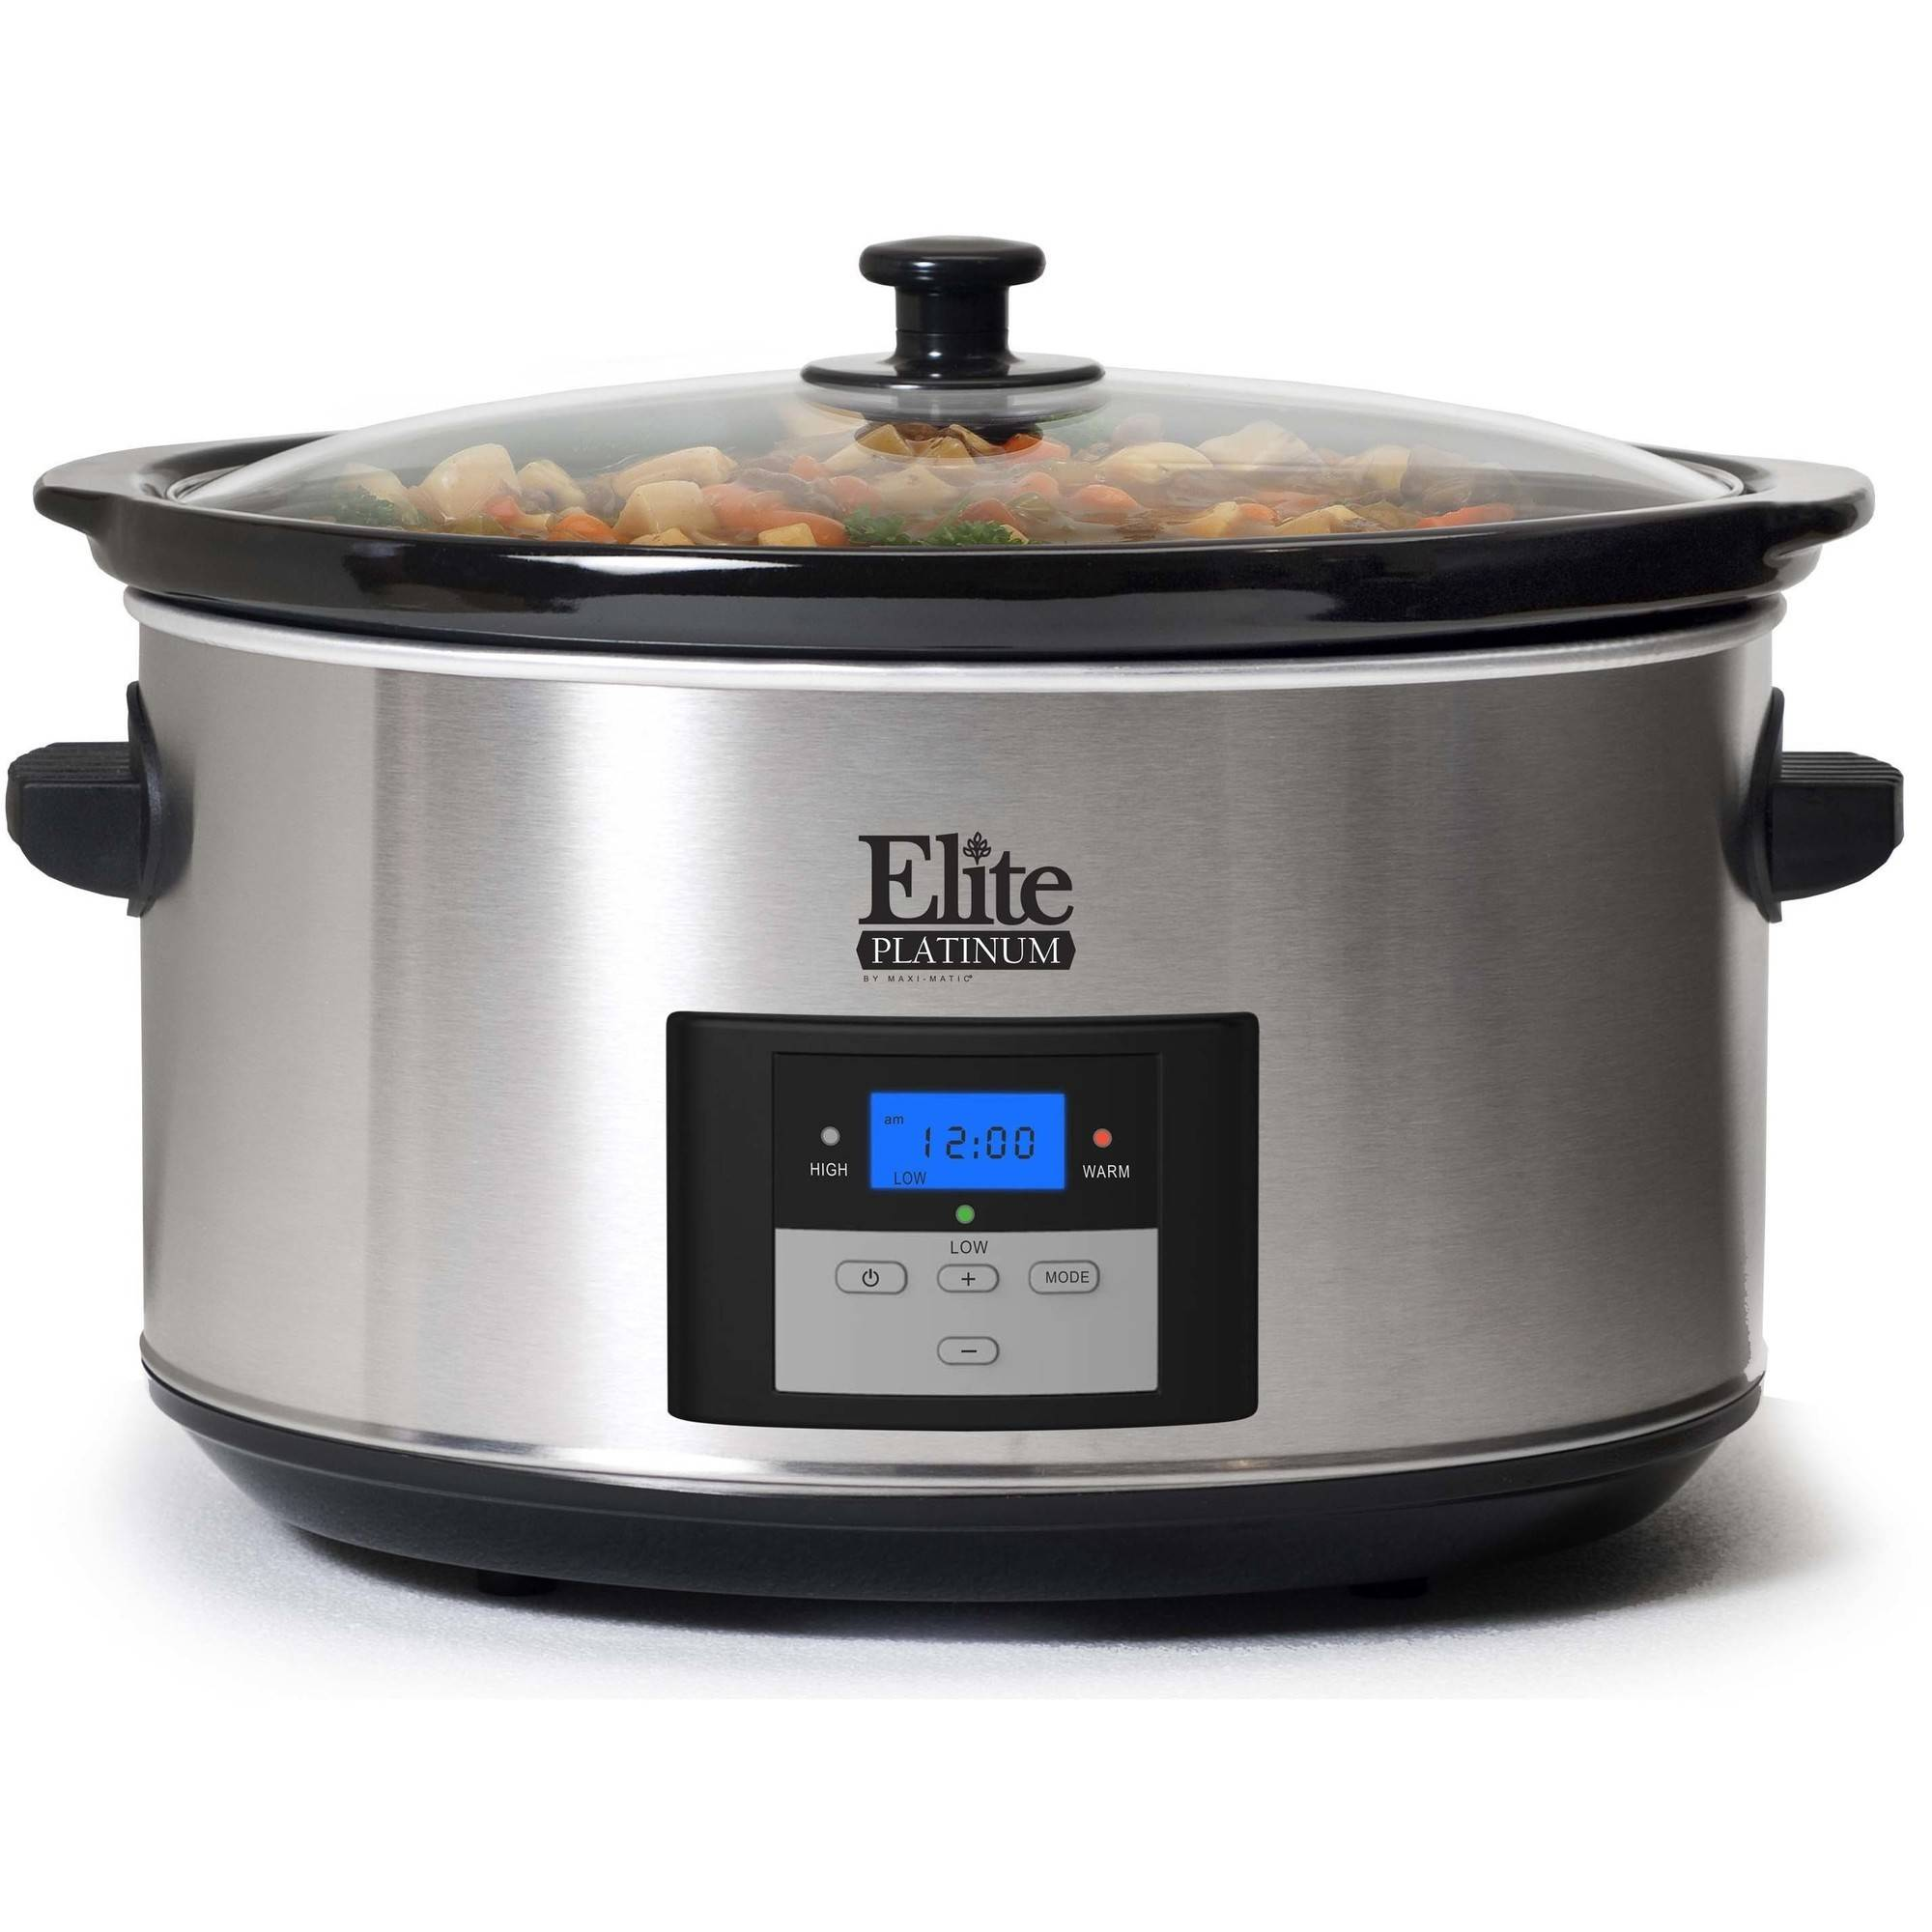 Elite Platinum MST-900D Maxi-Matic 8.5 Quart Digital Programmable Slow Cooker, Oval Stainless